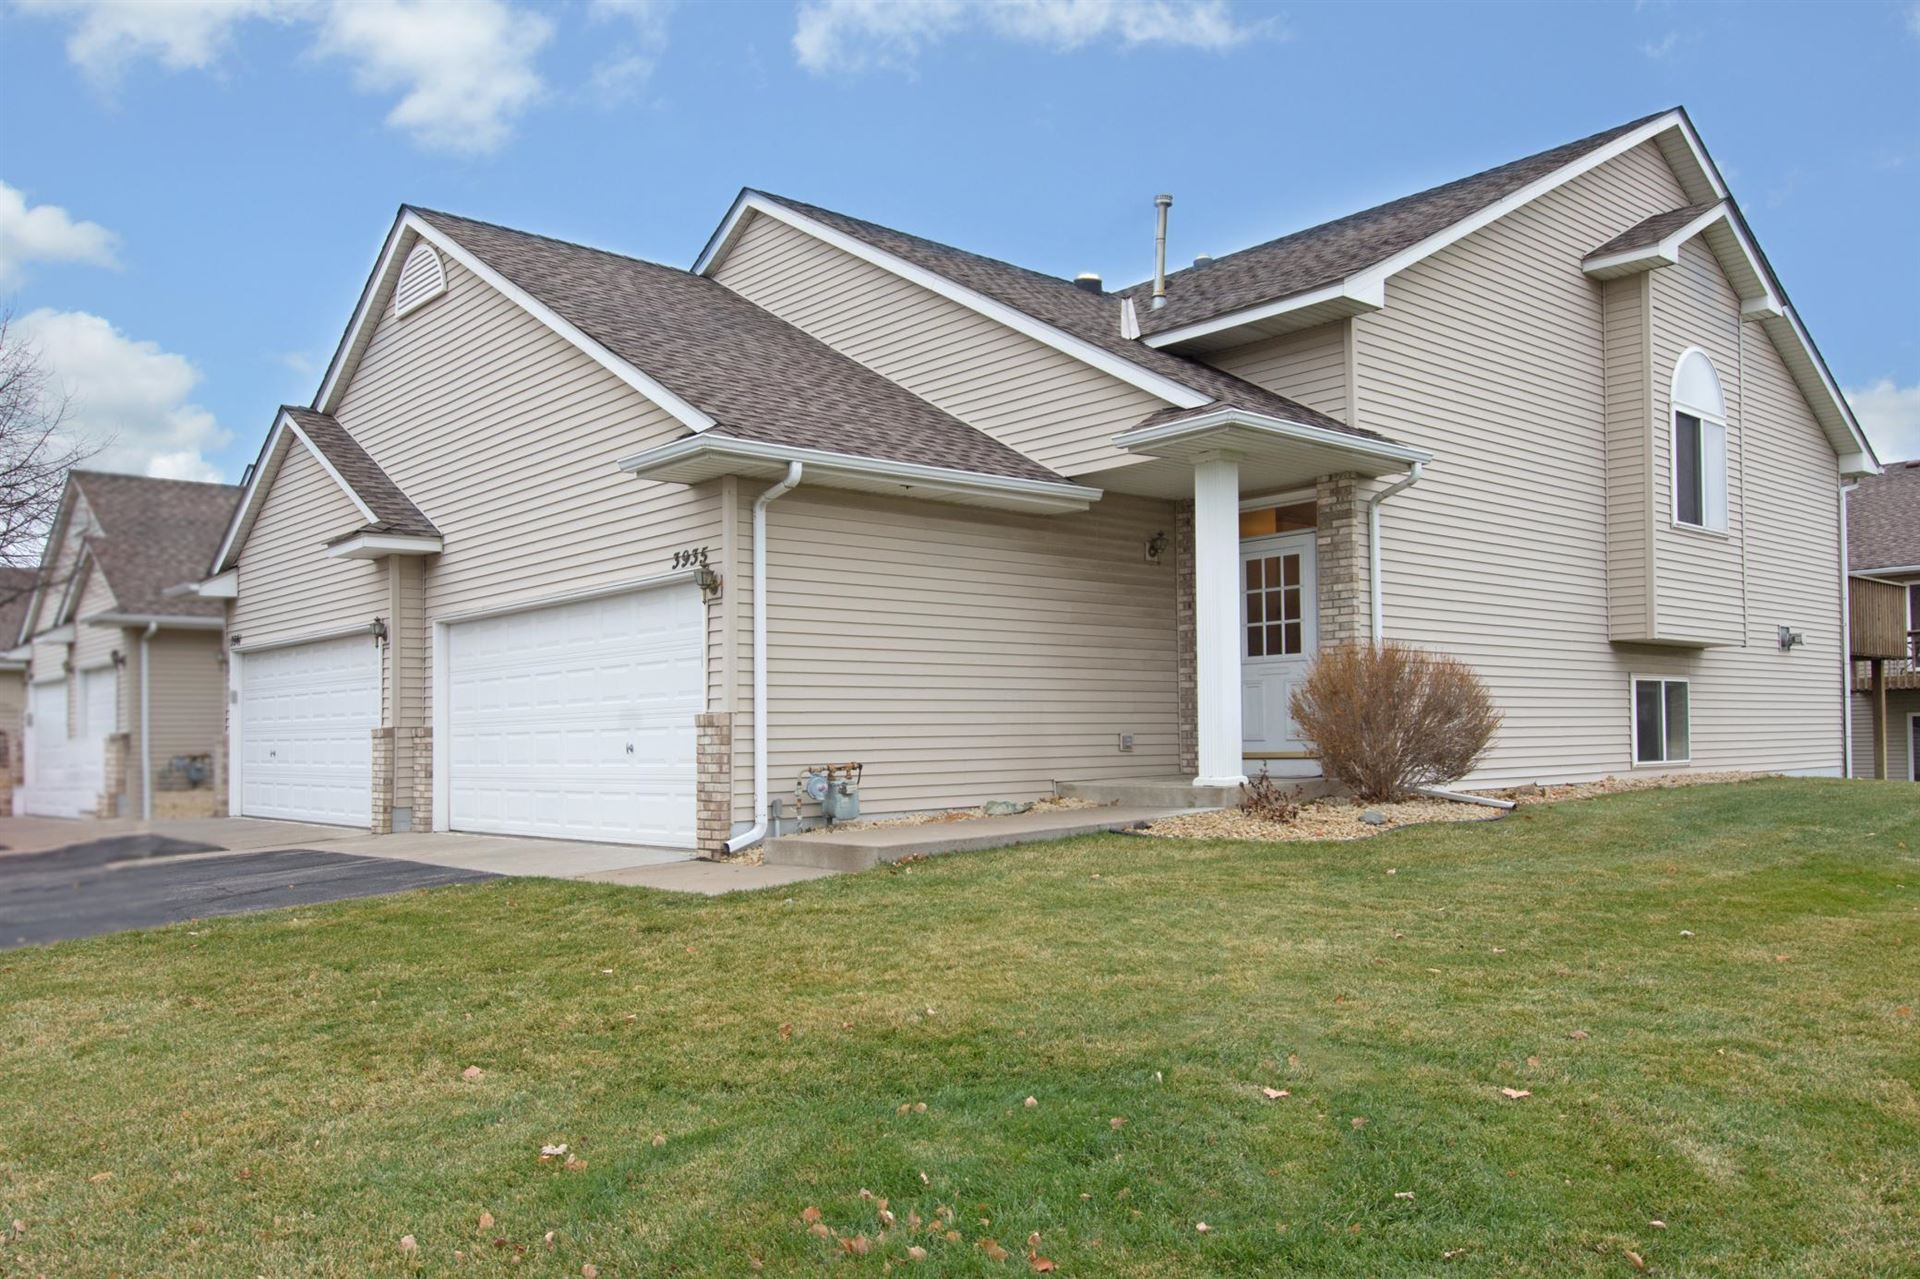 3935 124th Avenue NW, Coon Rapids, MN 55433 - MLS#: 5647584